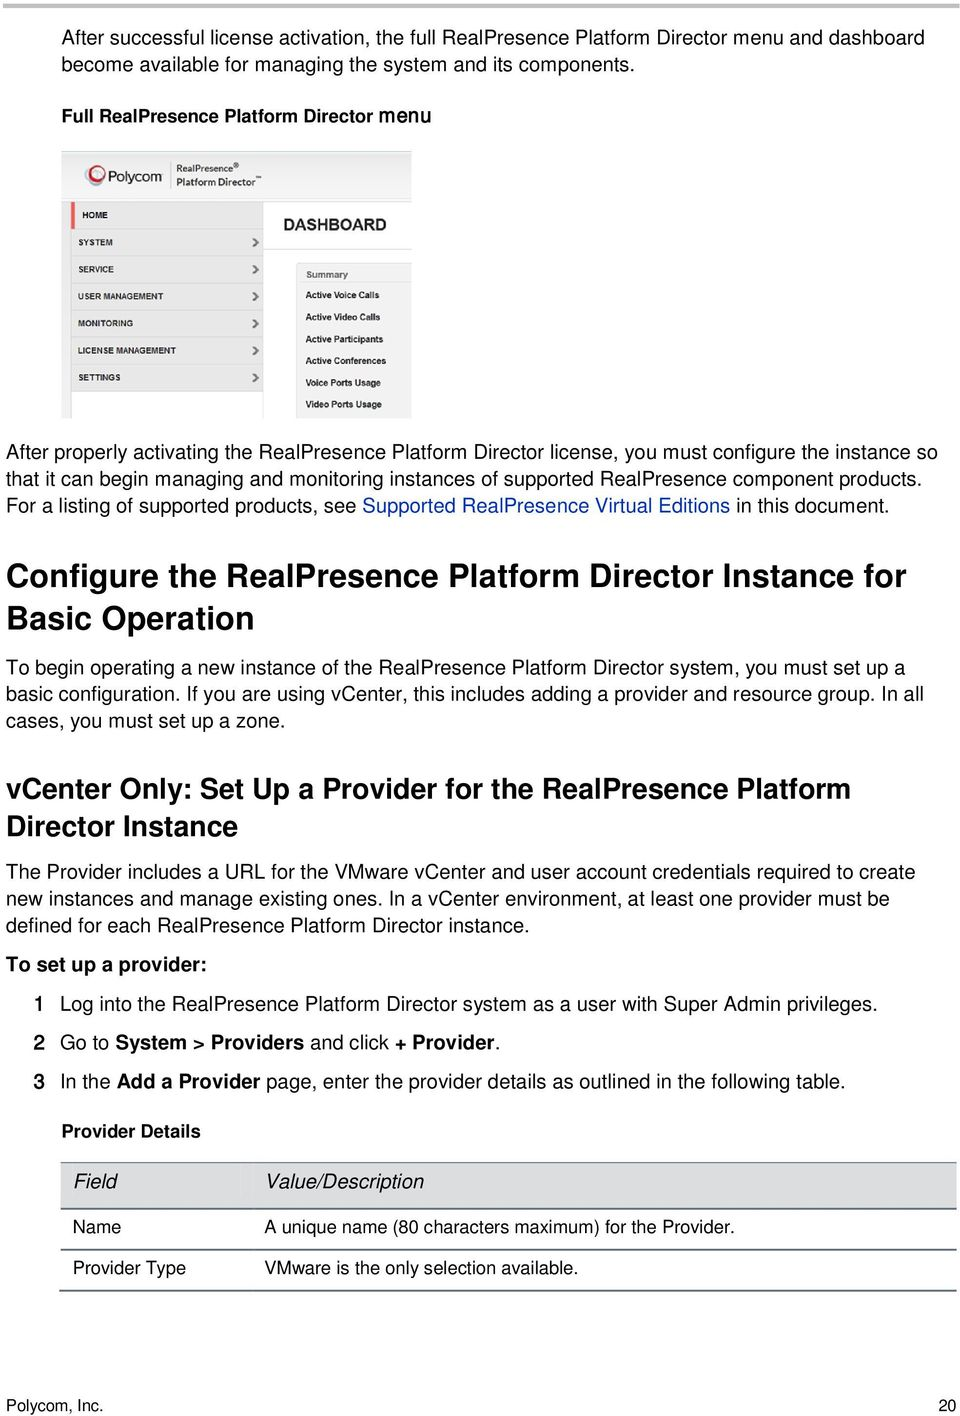 of supported RealPresence component products. For a listing of supported products, see Supported RealPresence Virtual Editions in this document.